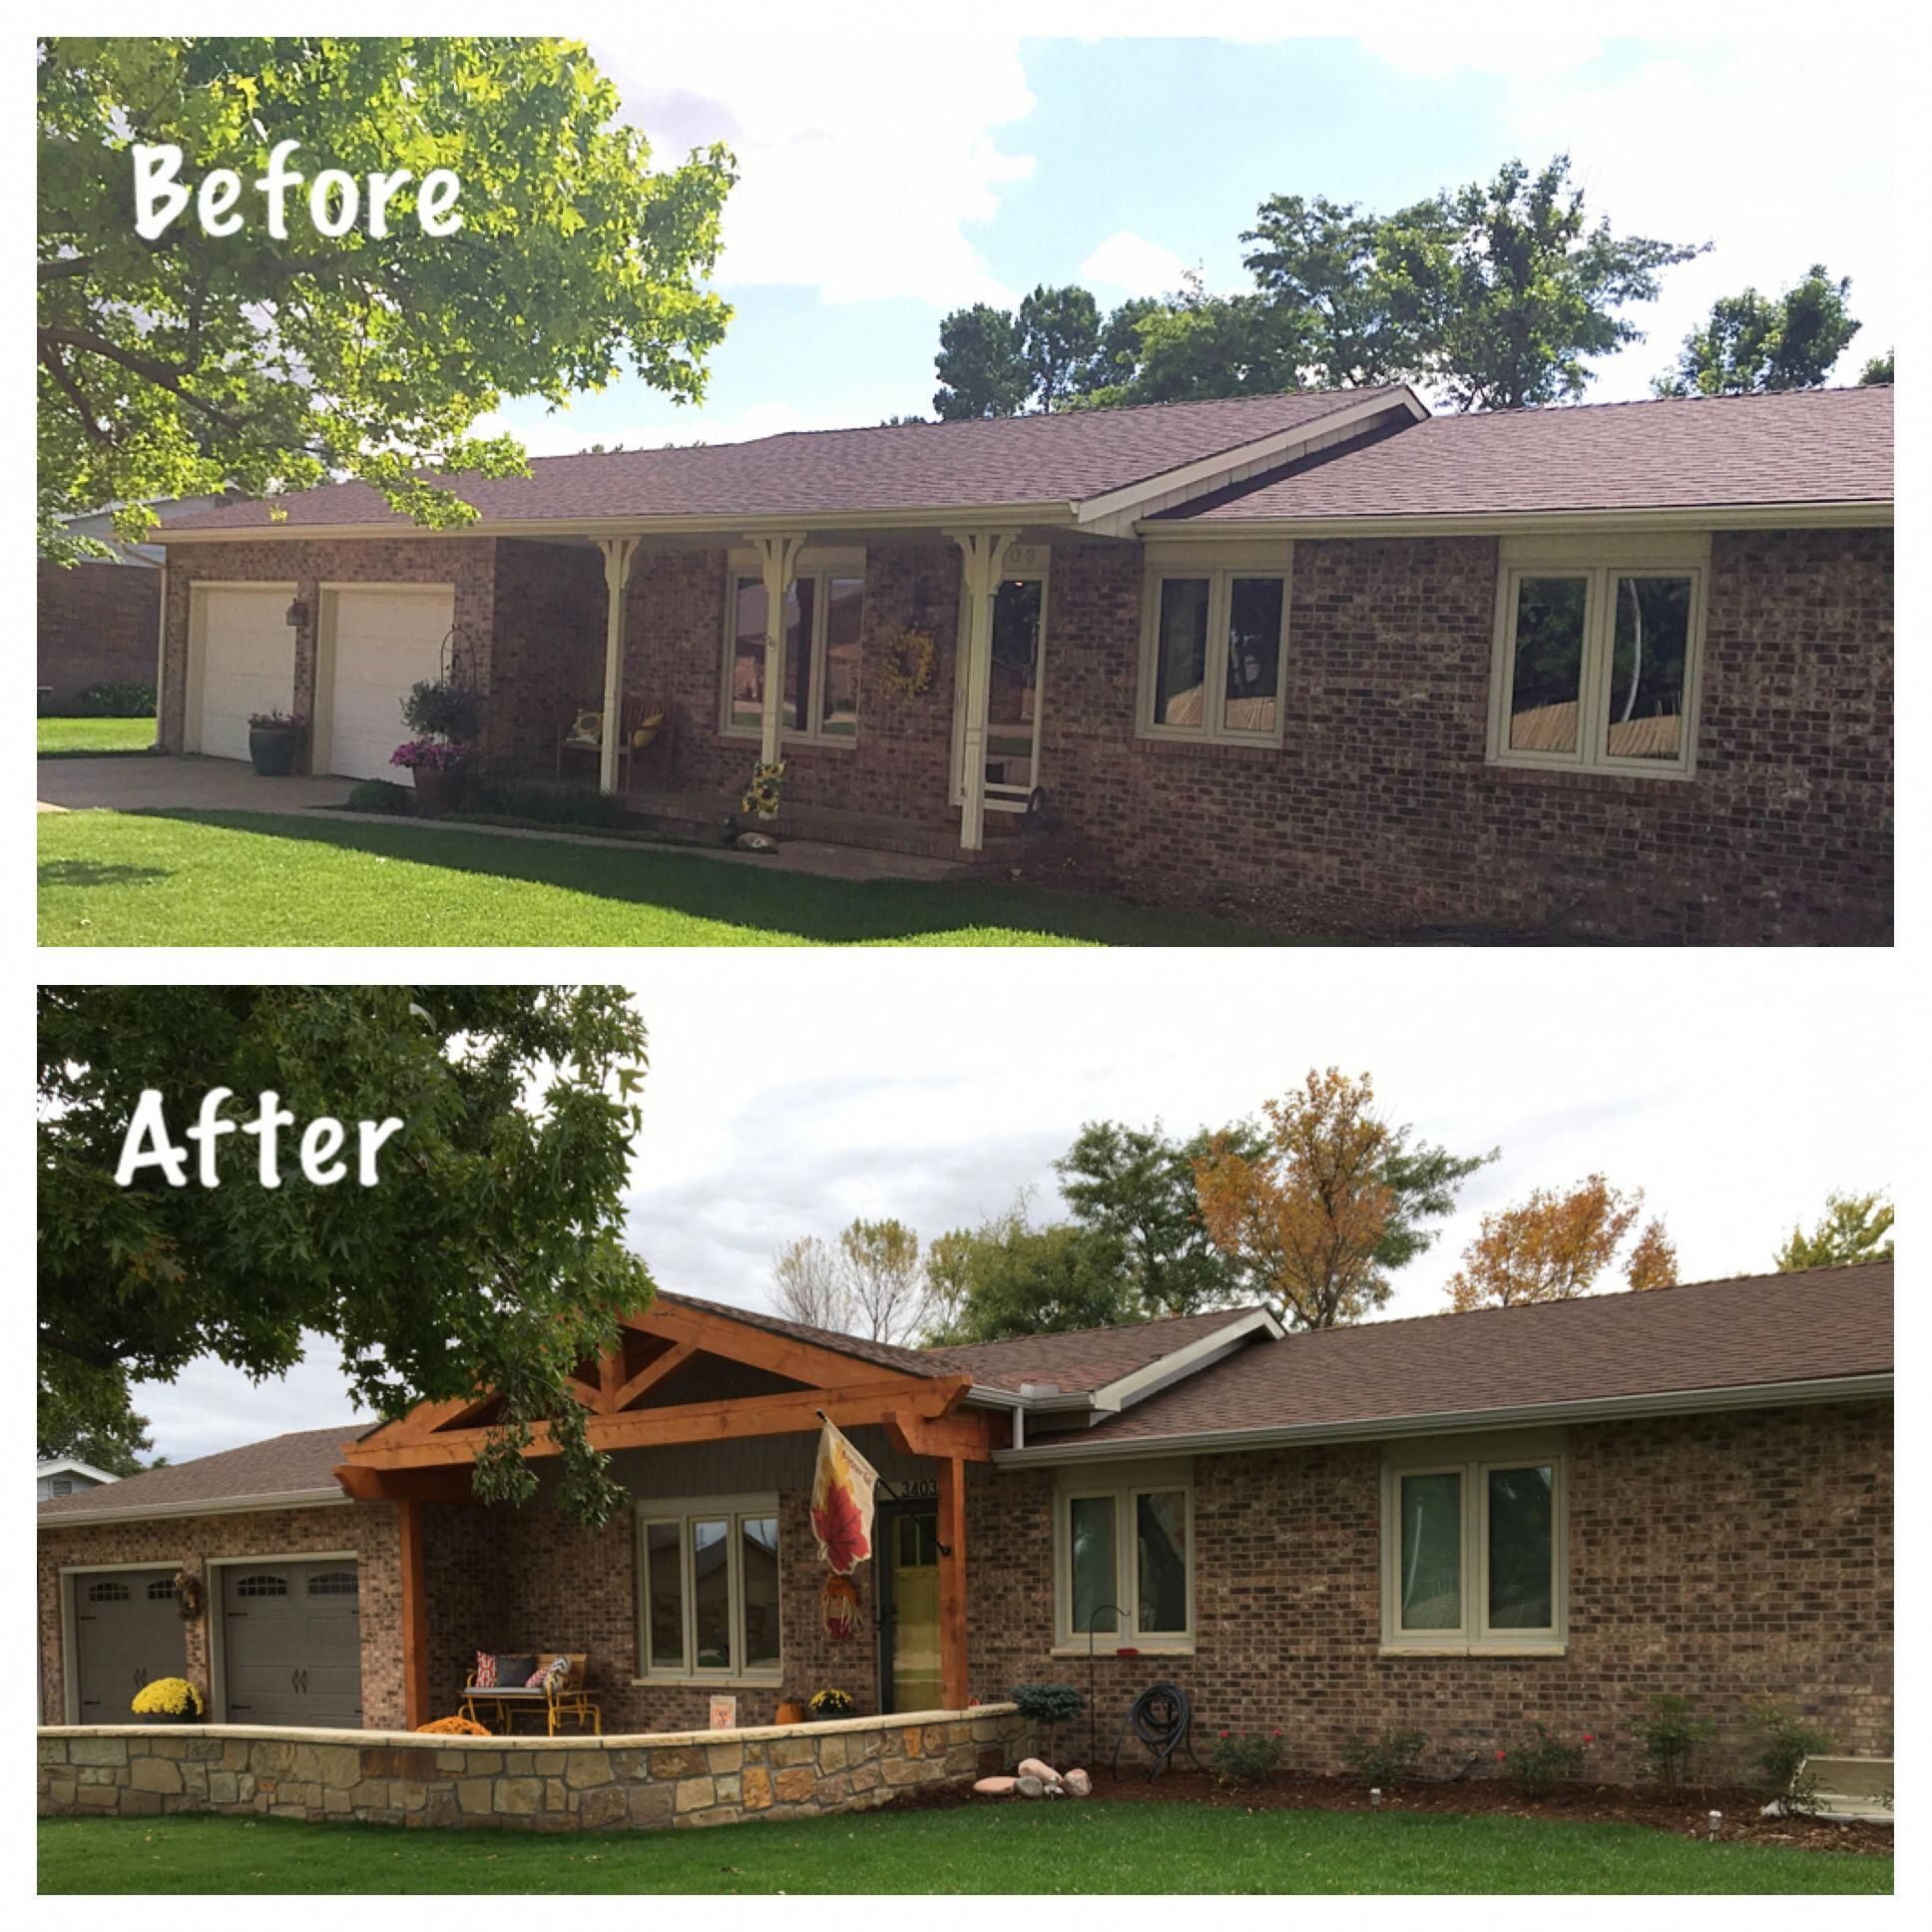 1970 S Before And After Ranch Style Exterior Update Outdoorremodelinghouse Ranch House Remodel Ranch House Exterior Brick Exterior House